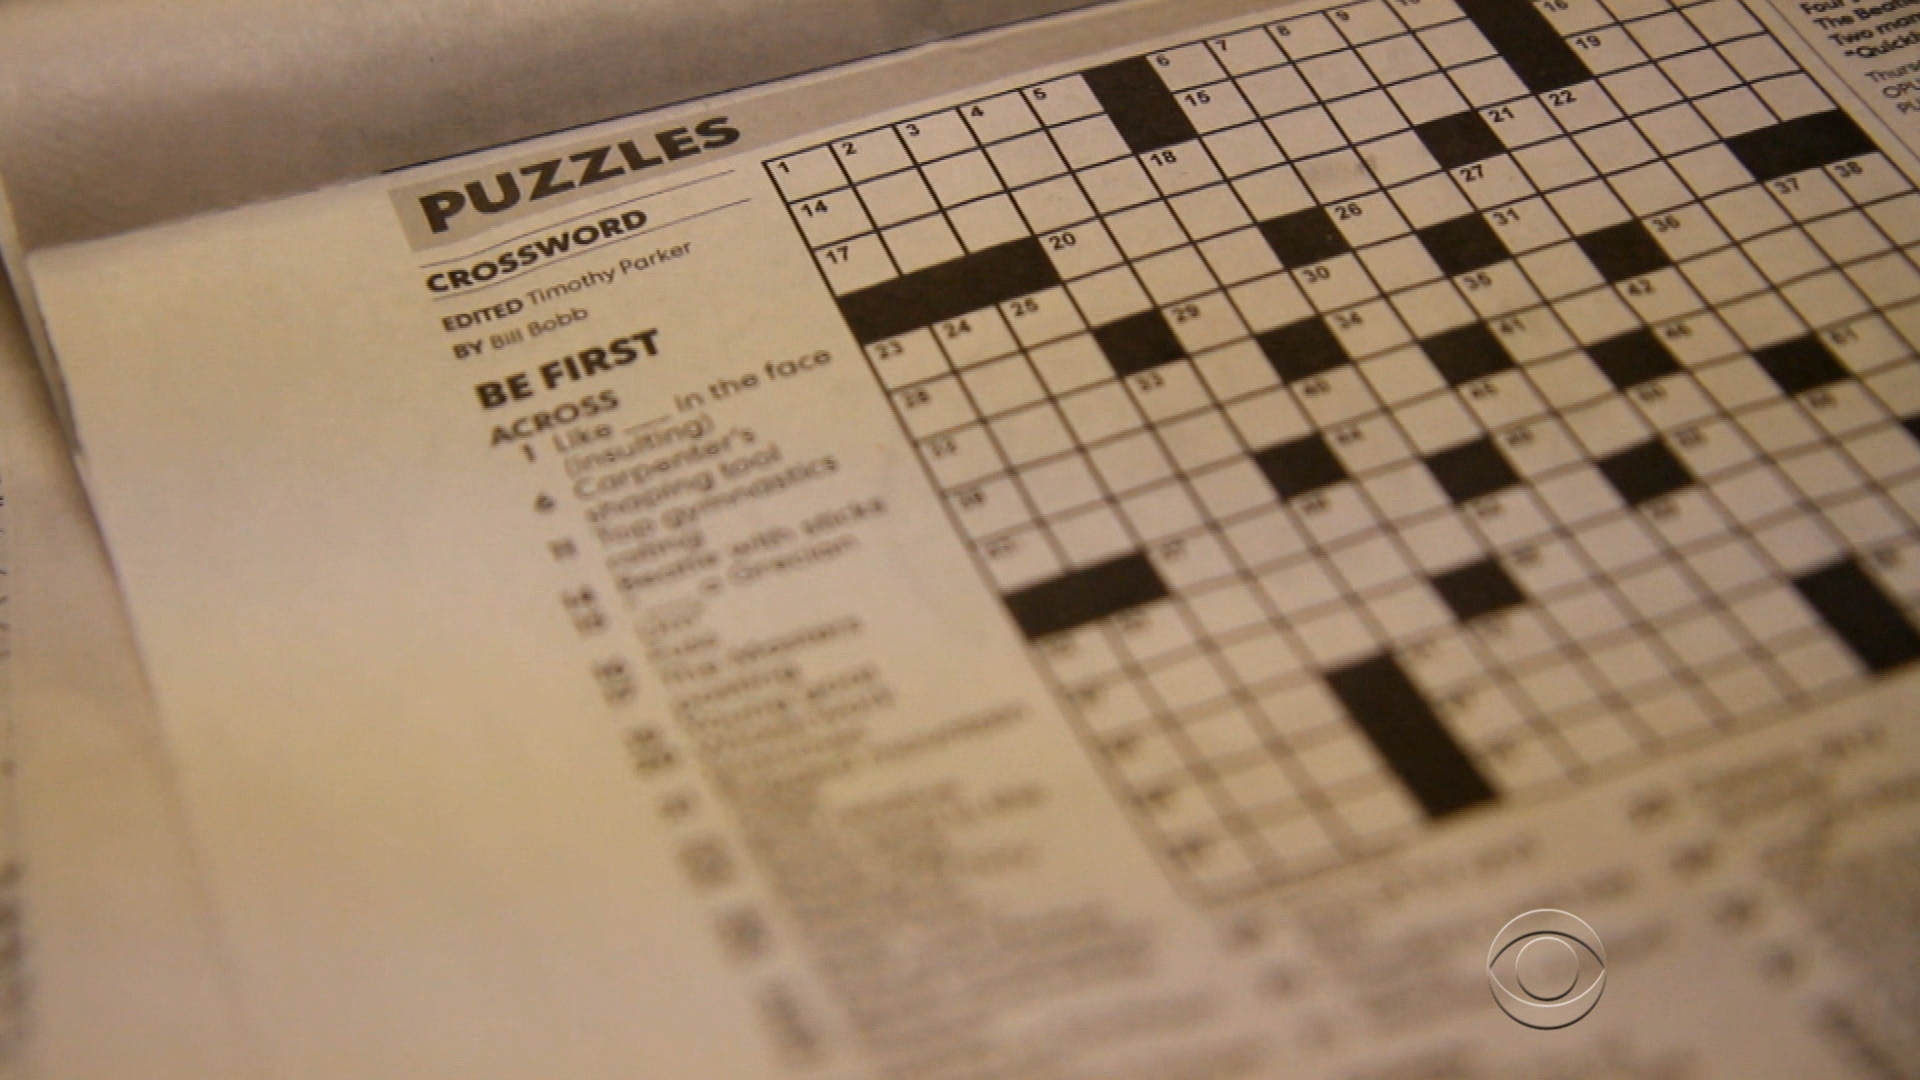 Crossword puzzle: Do clues reveal plagiarism? - CBS News